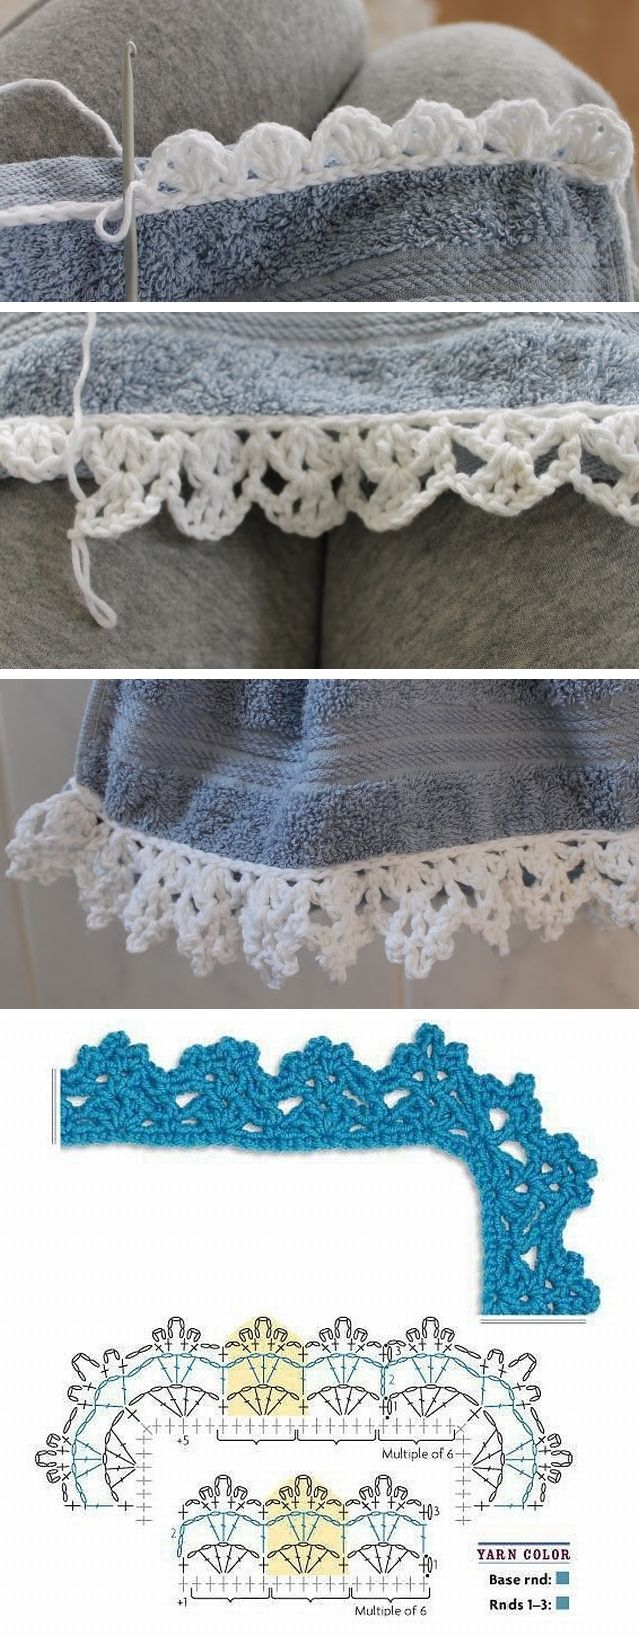 Lace edging pattern diagram #crochet